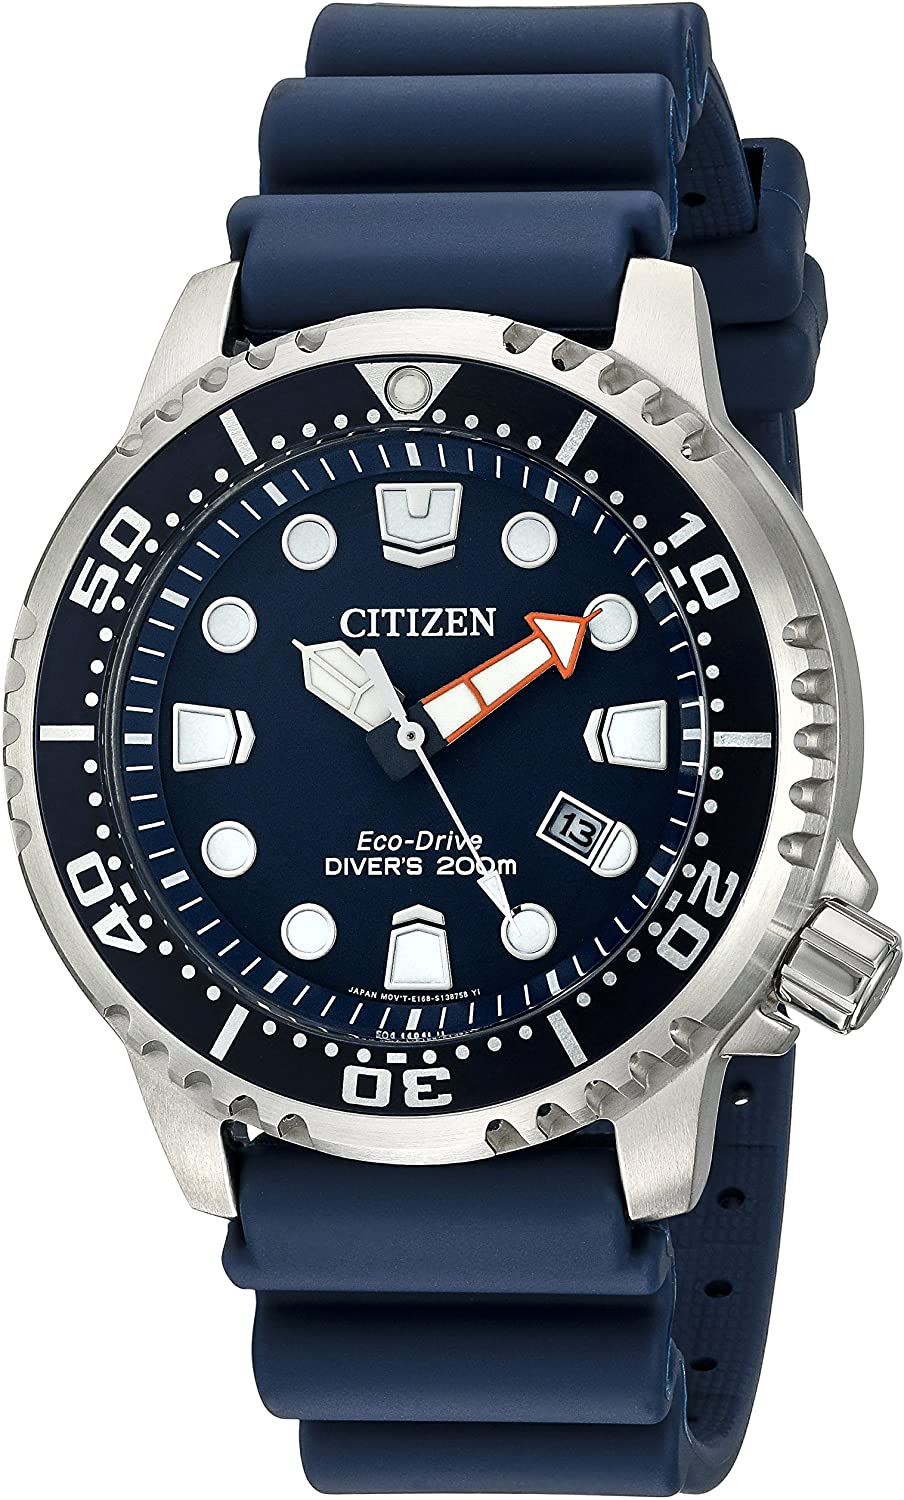 Citizen BN0151-09L Promaster